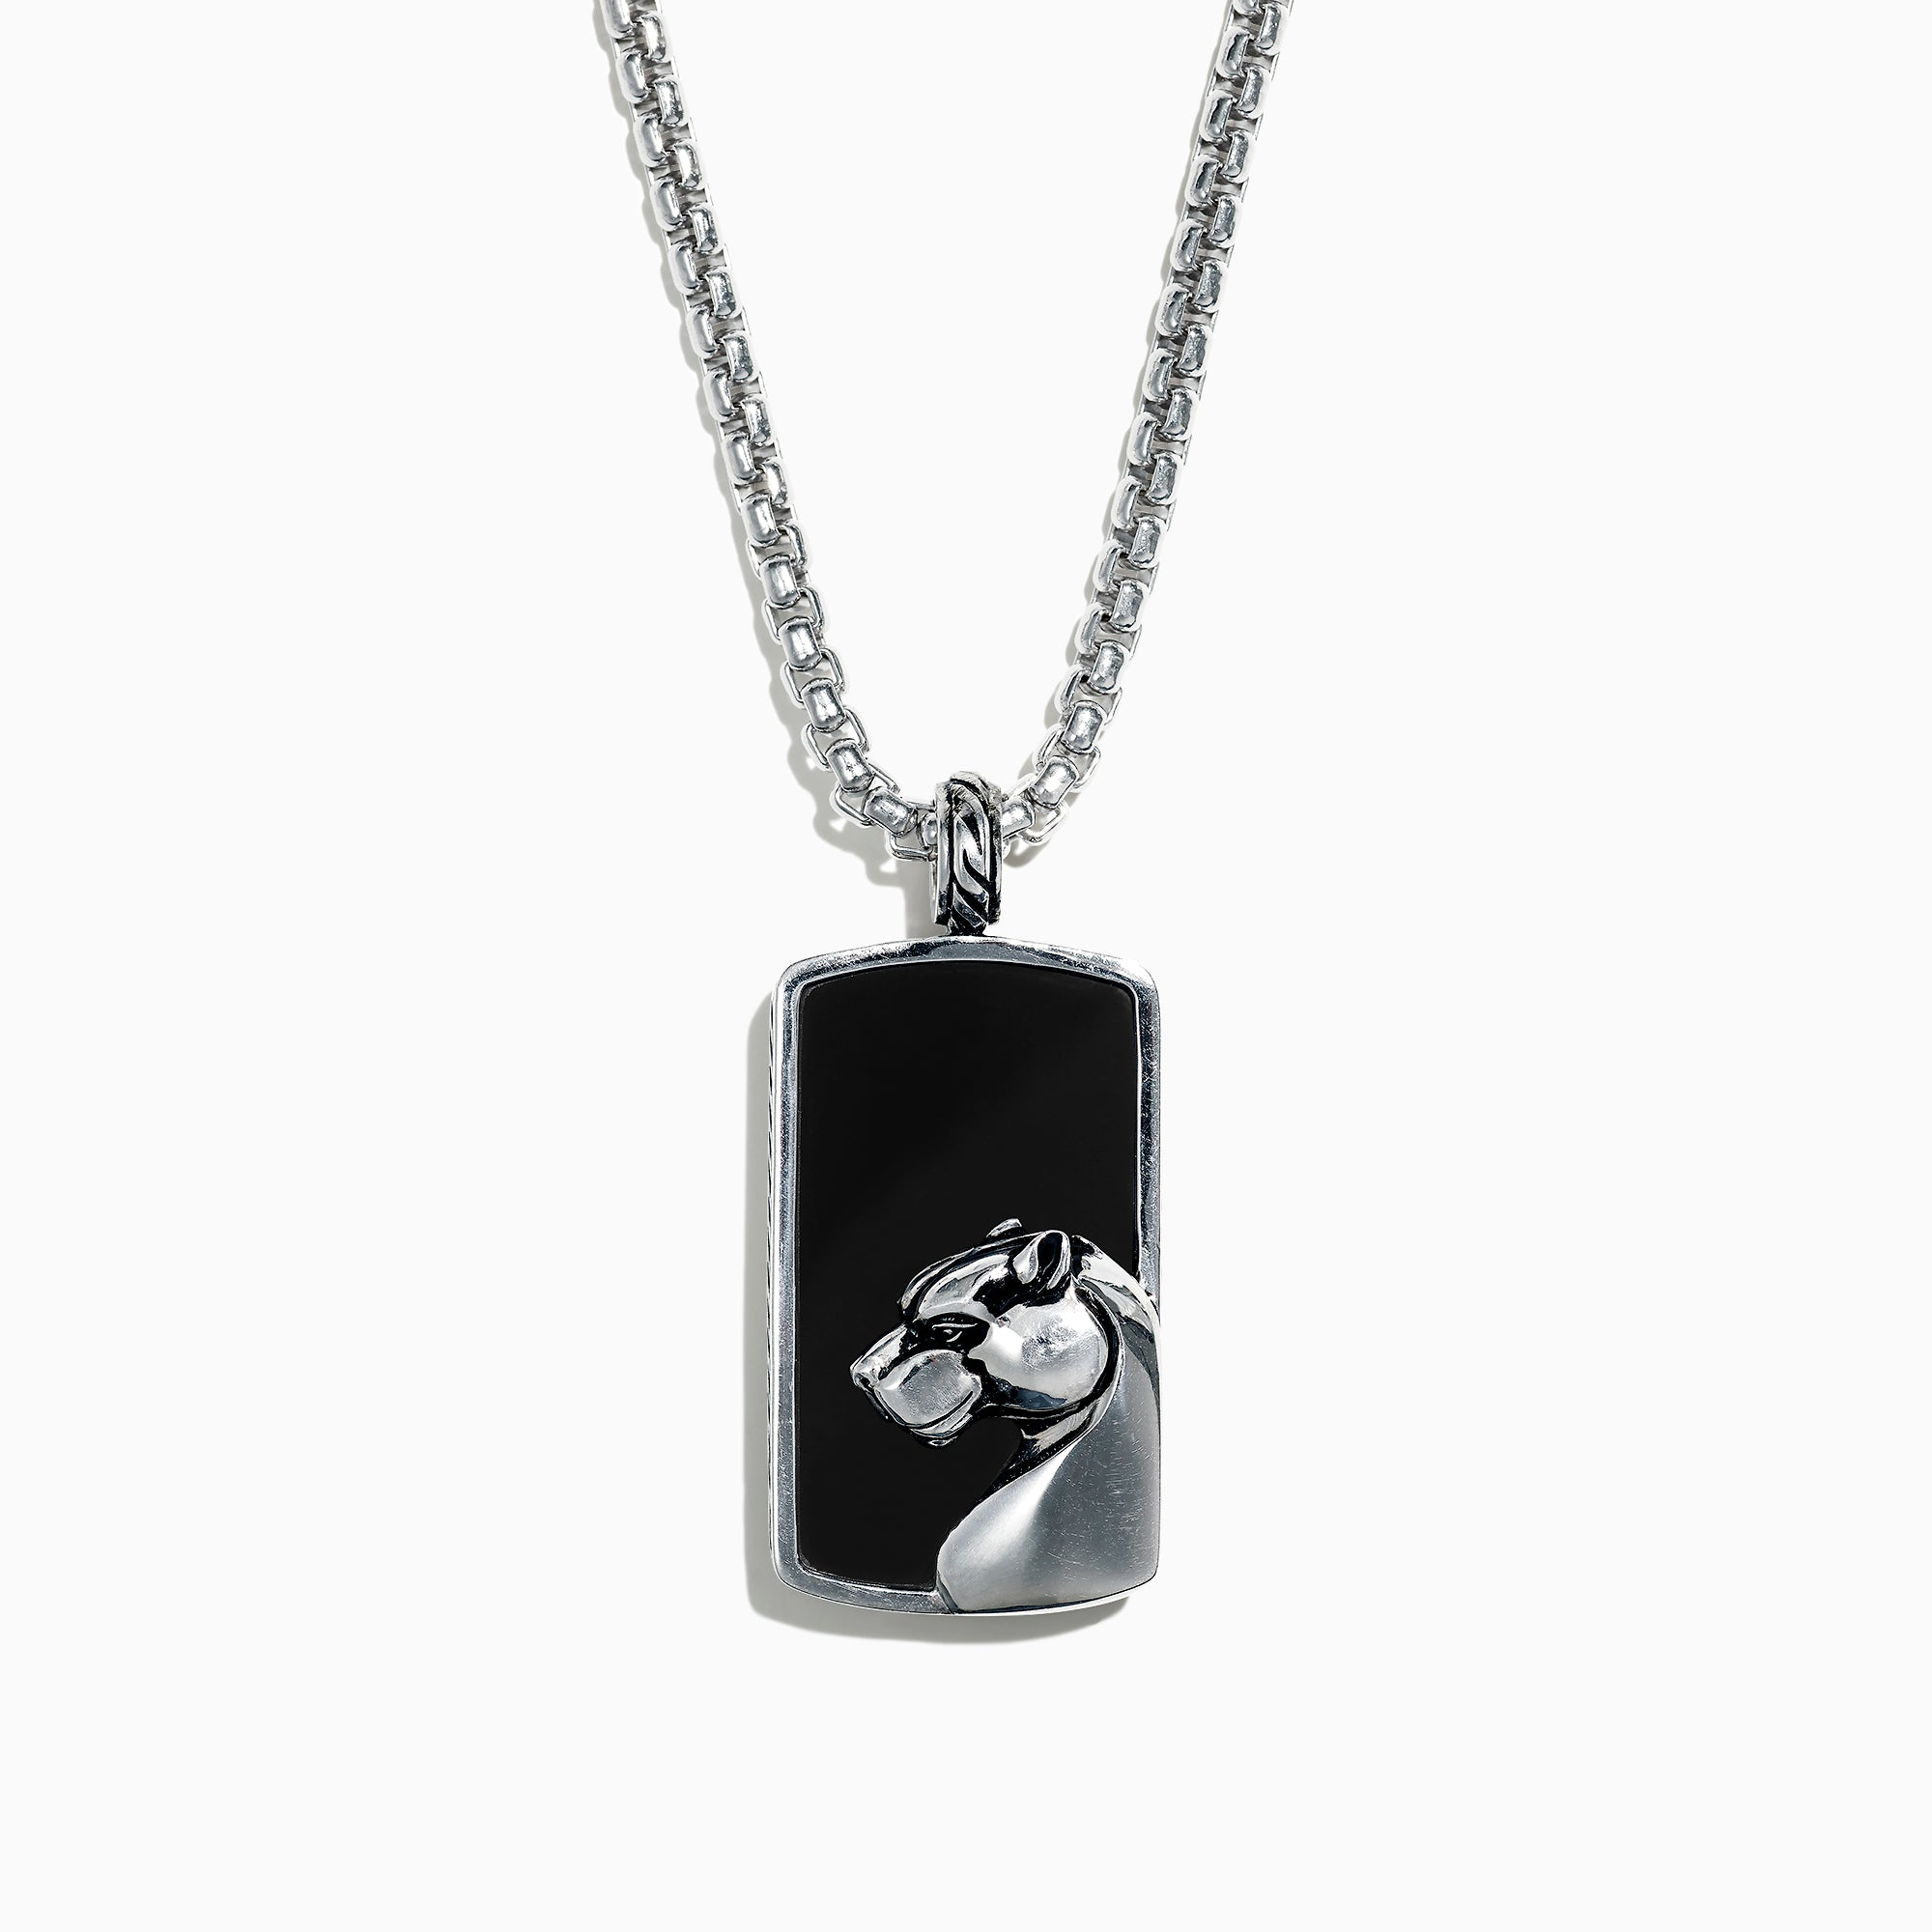 Effy Men's 925 Sterling Silver Onyx Dog Tag Pendant, 28.40 TCW